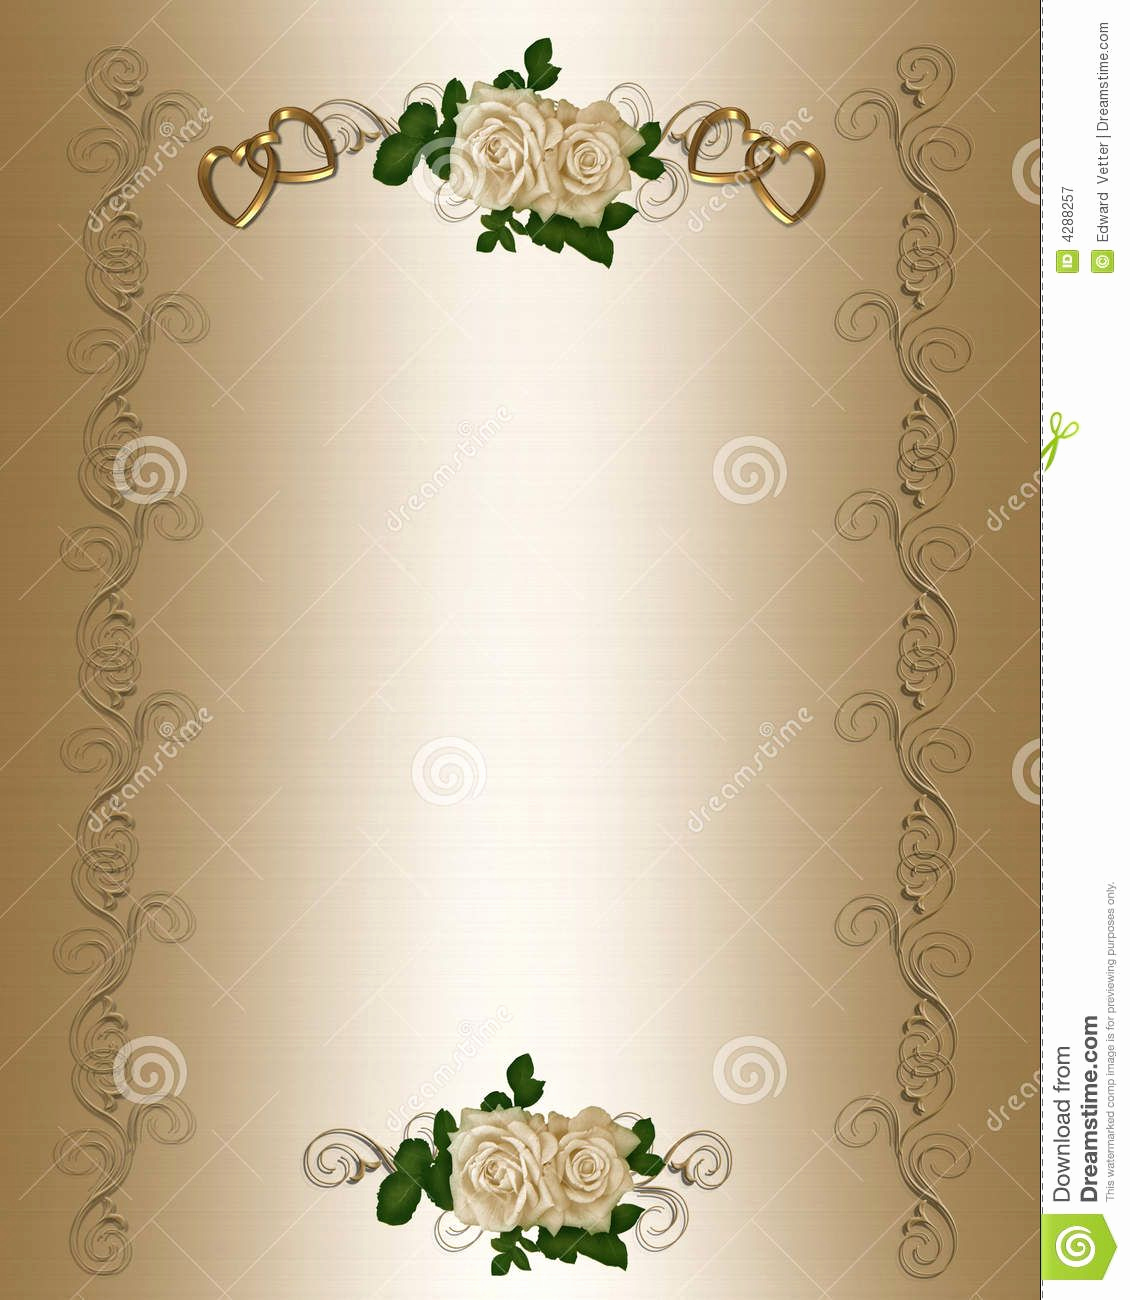 Free Wedding Invitation Templates Downloads Elegant Wedding Templates Free Google Search